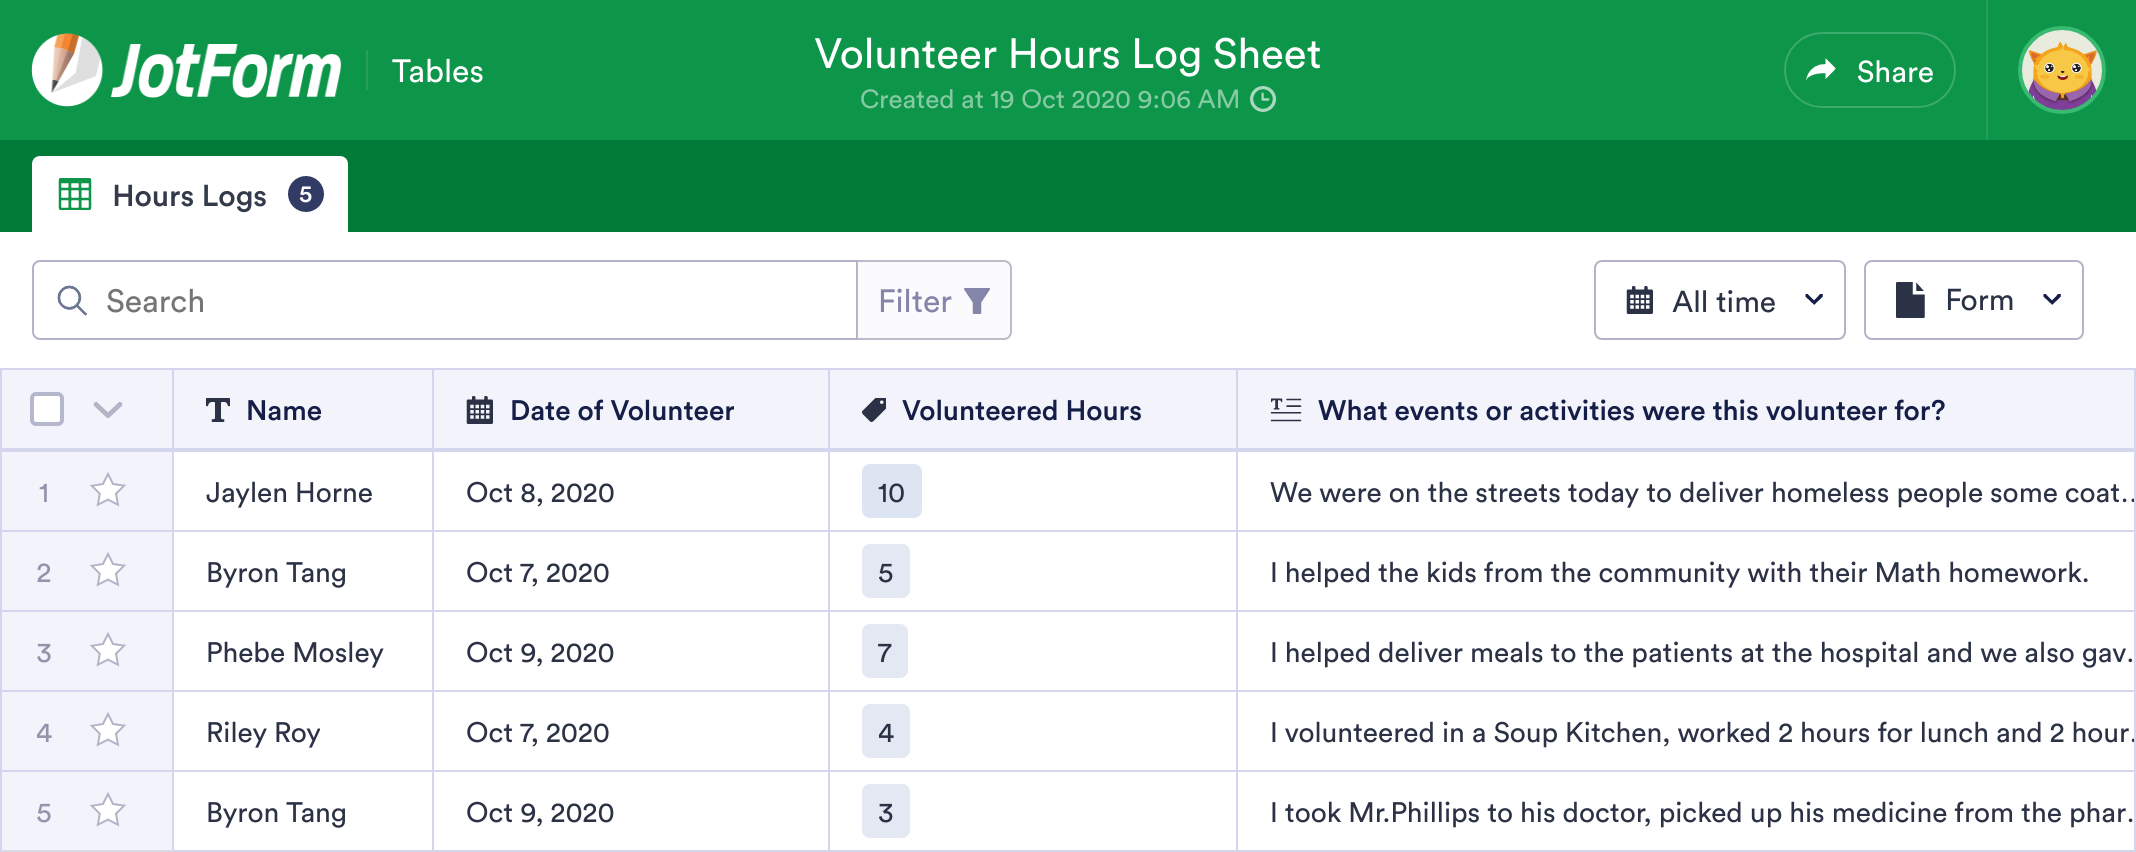 Volunteer Hours Log Sheet